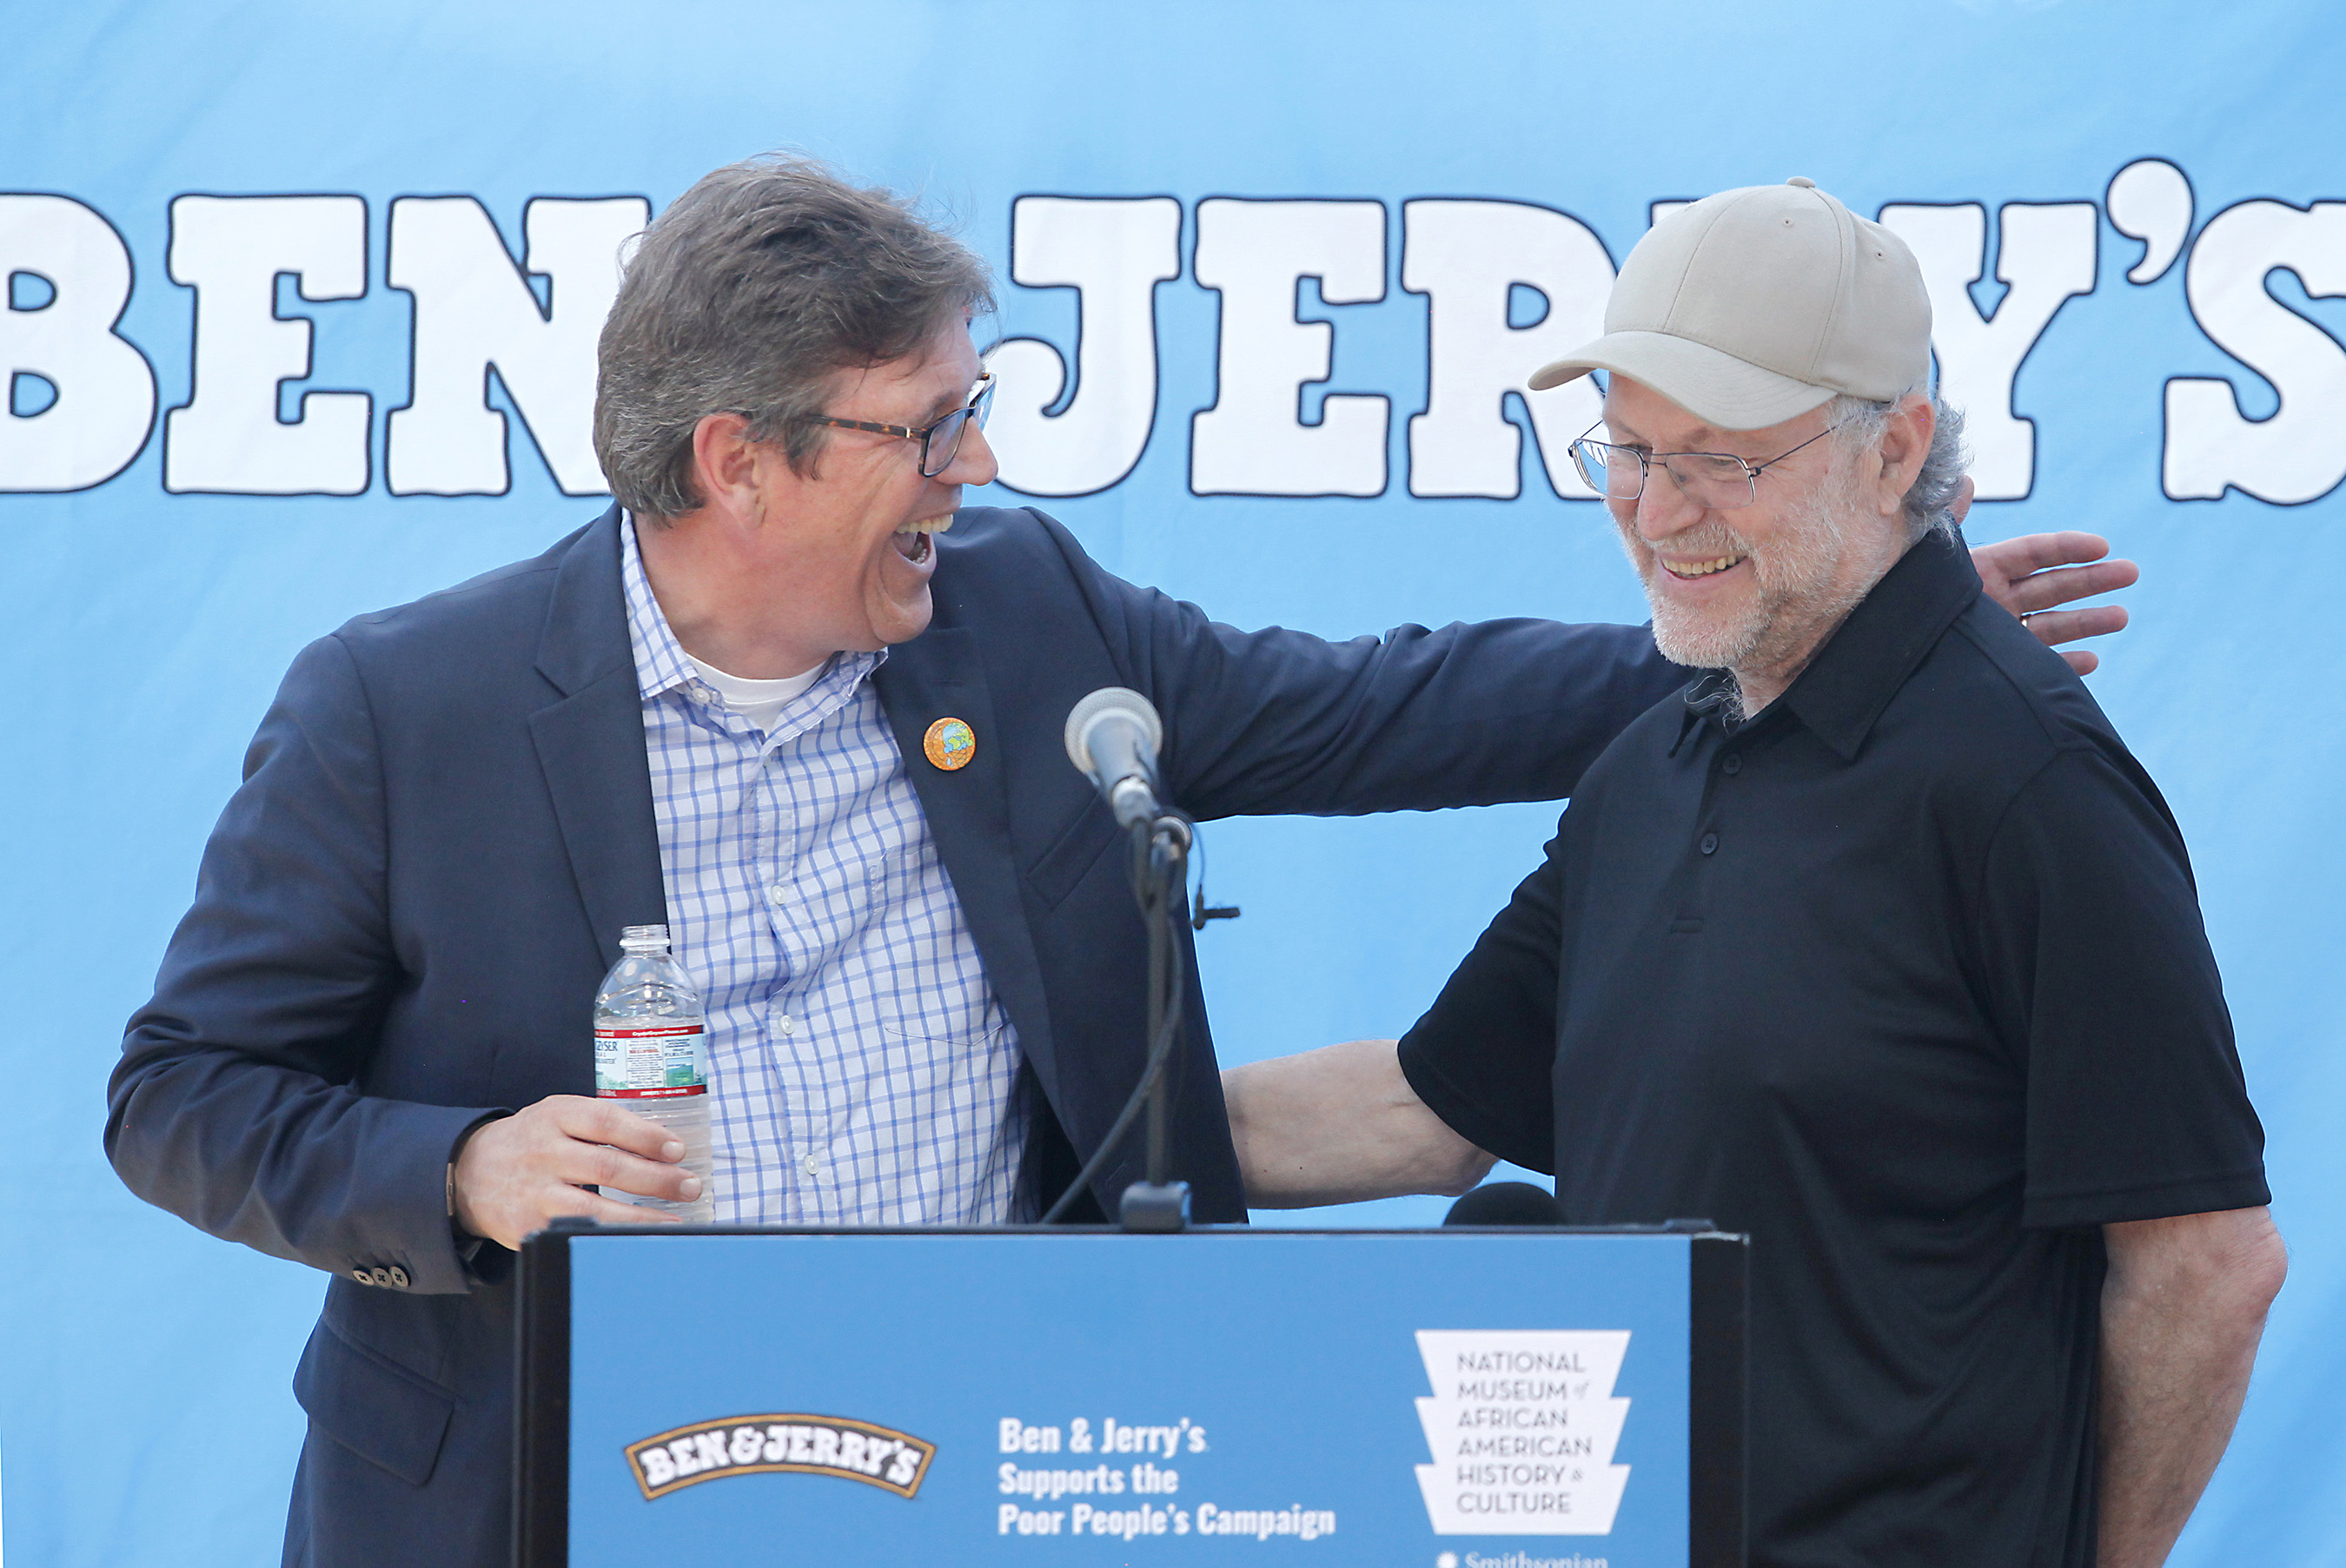 Ben & Jerry's CEO Jostein Solheim welcomes Co-Founder Jerry Greenfield at the opening of an exhibit on the 1968 Poor People's Campaign at the company's Vermont ice cream factory.